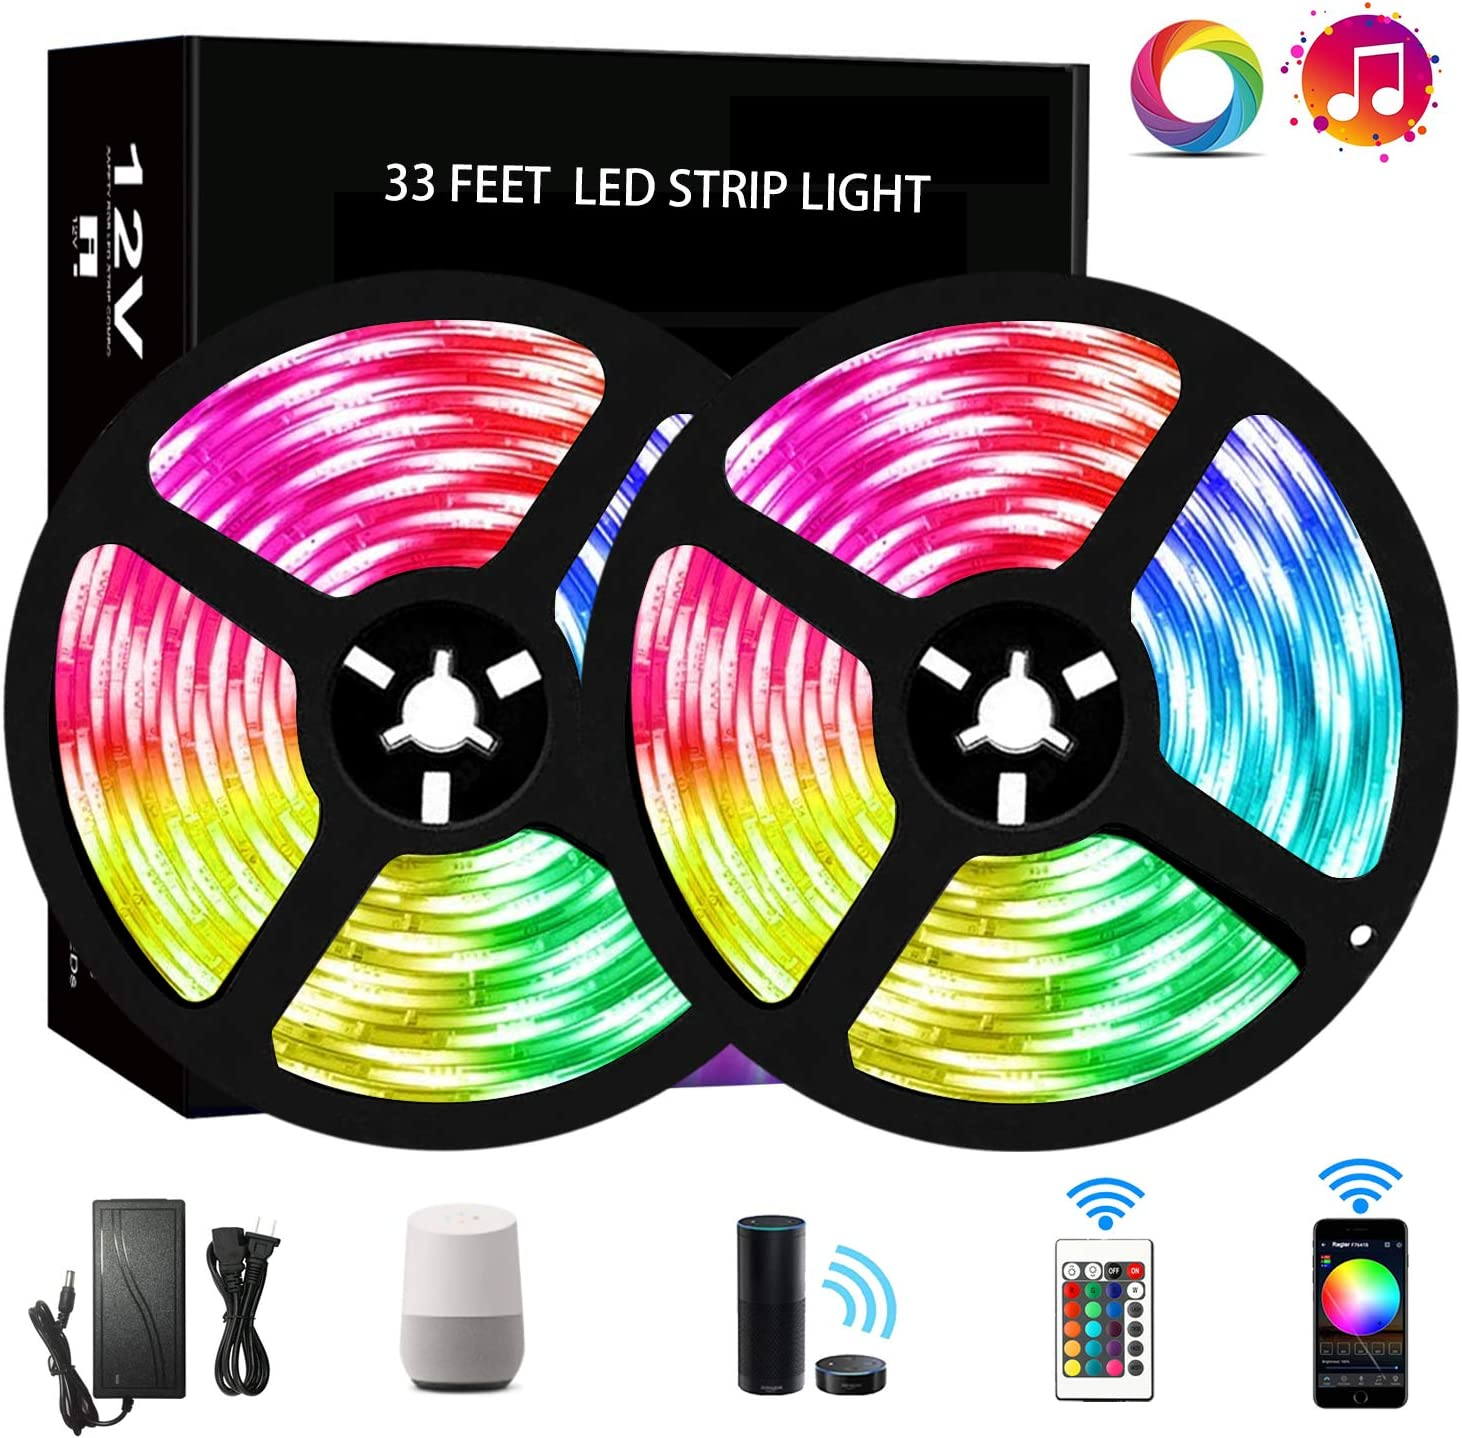 RUISHINE 33FT LED Strip Lights WiFi, Wireless Smart Phone Controlled RGB Rope Lights Sync to Music with 24 Key Remote, Flexible Color Changing Strip Kits Compatible with Alexa/Google Home